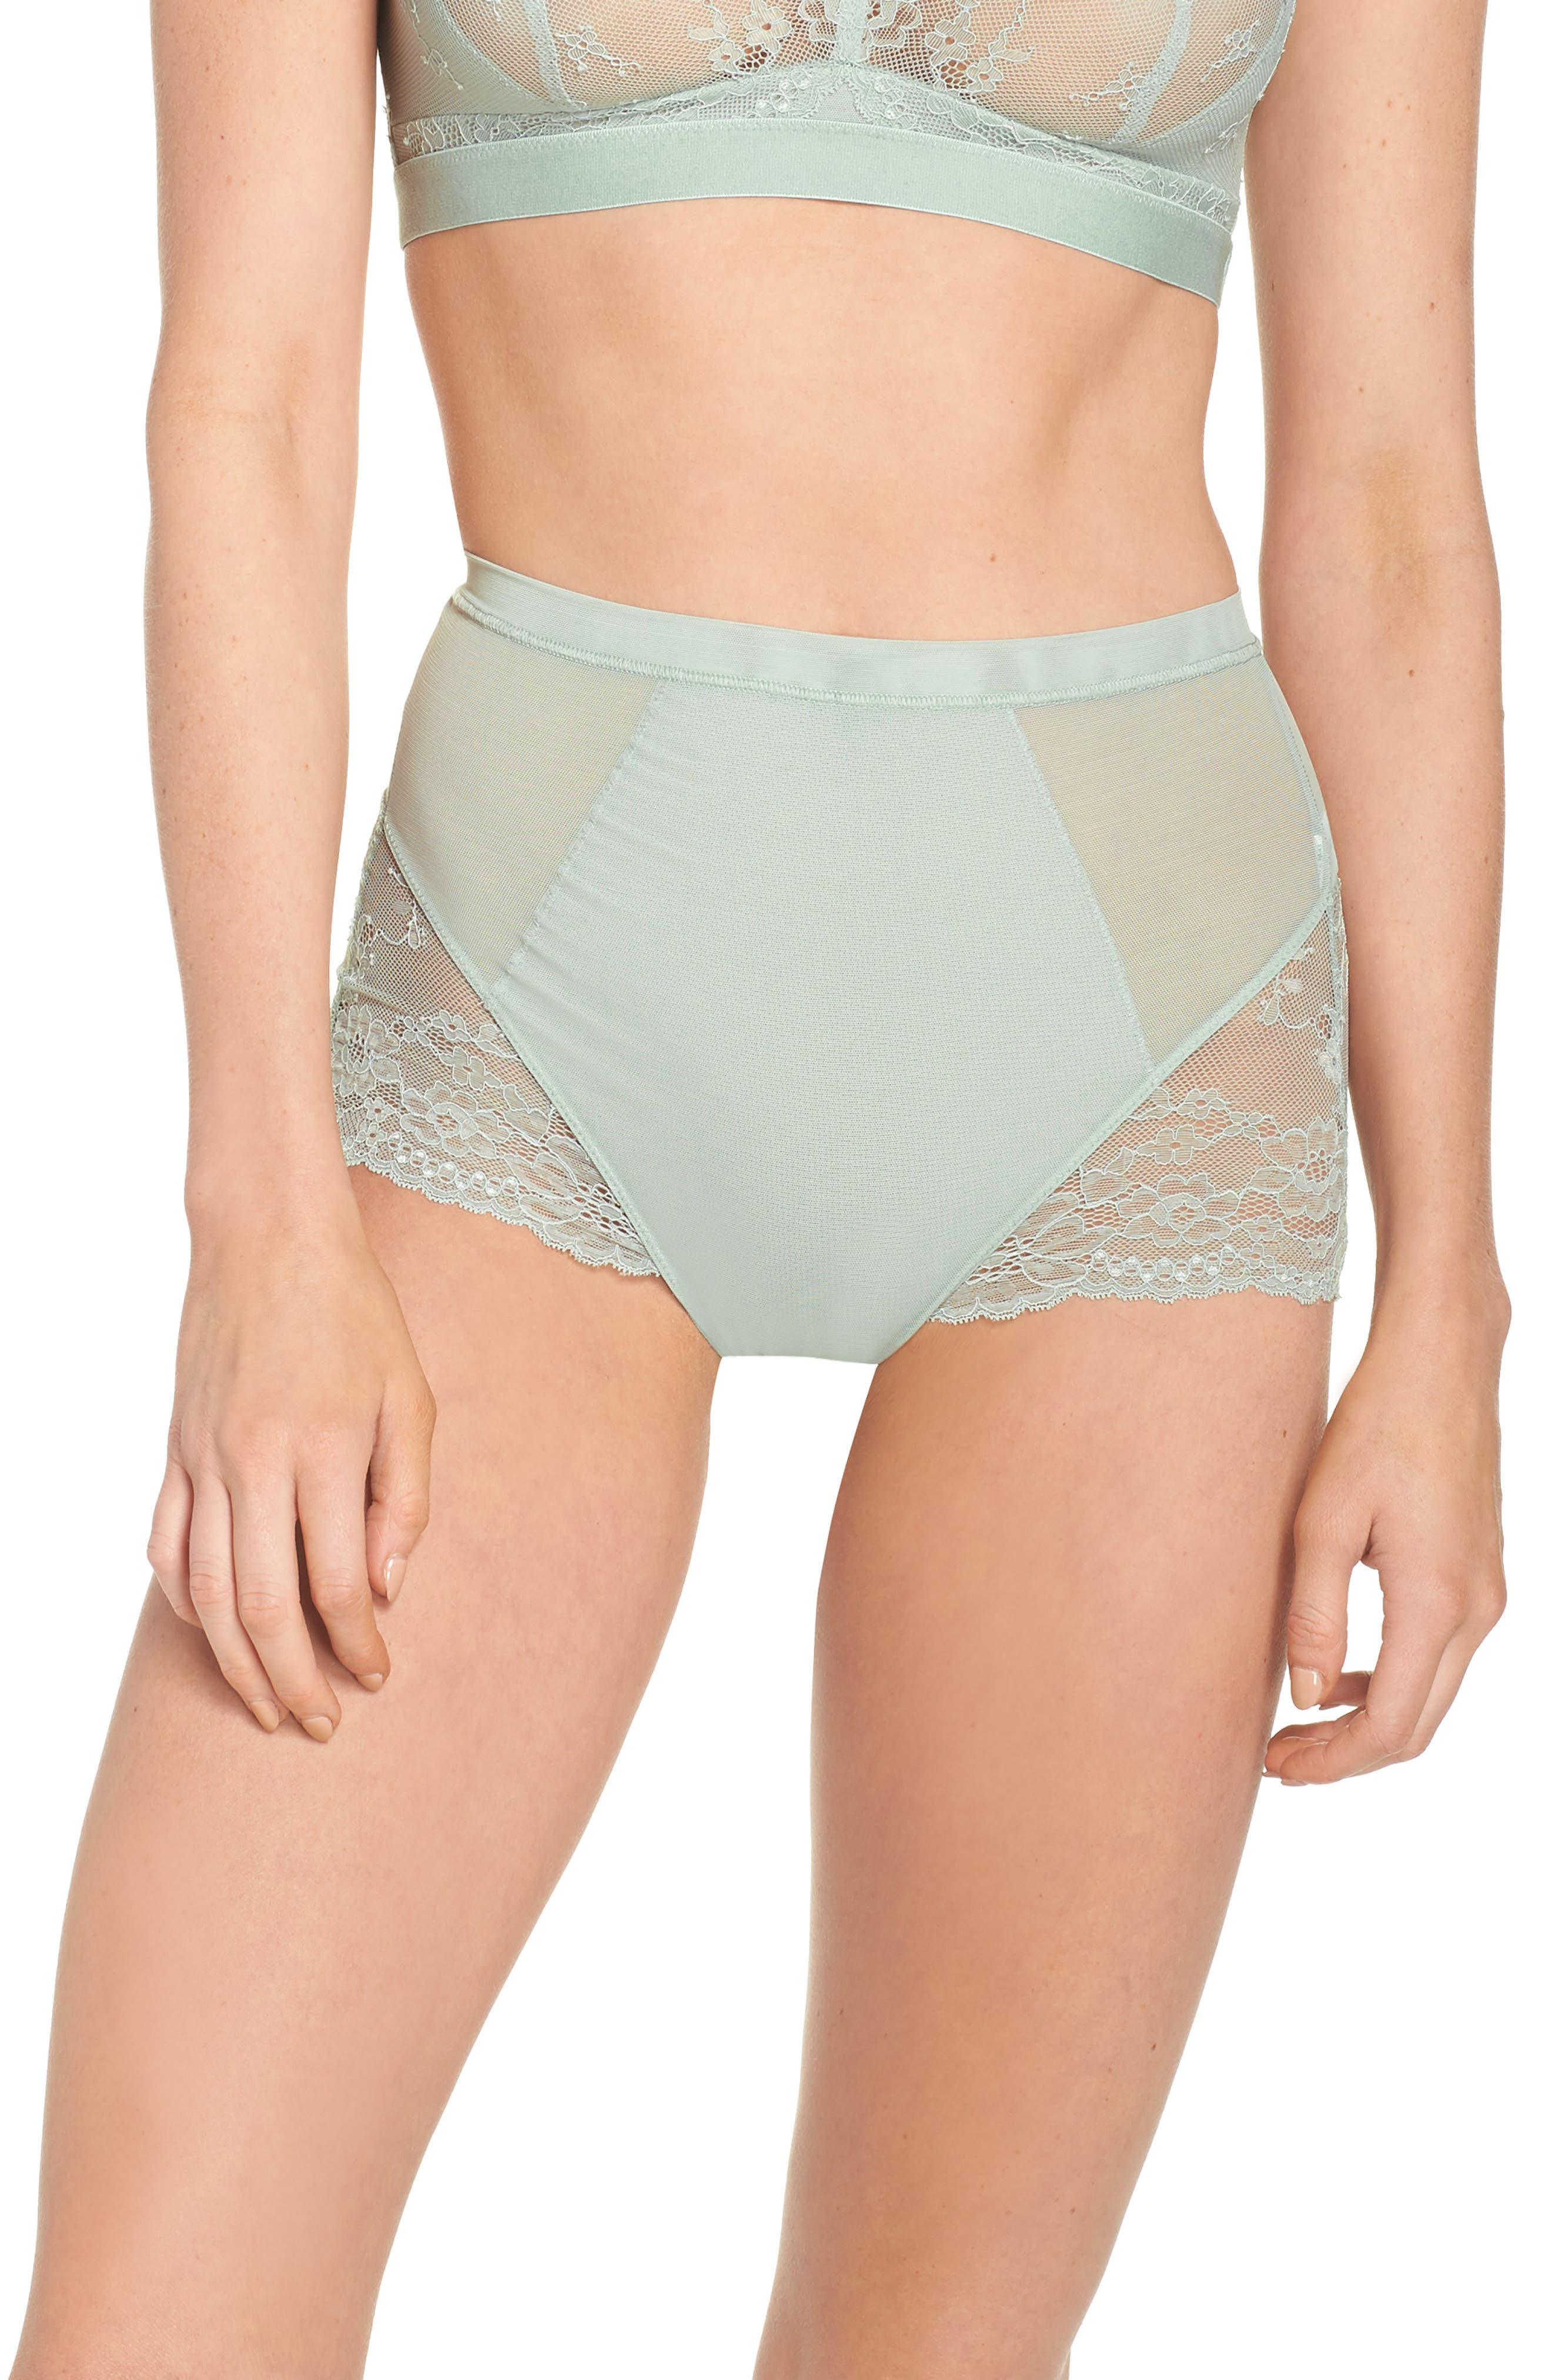 Spotlight On Lace Briefs,                             Main thumbnail 1, color,                             Seafoam Green